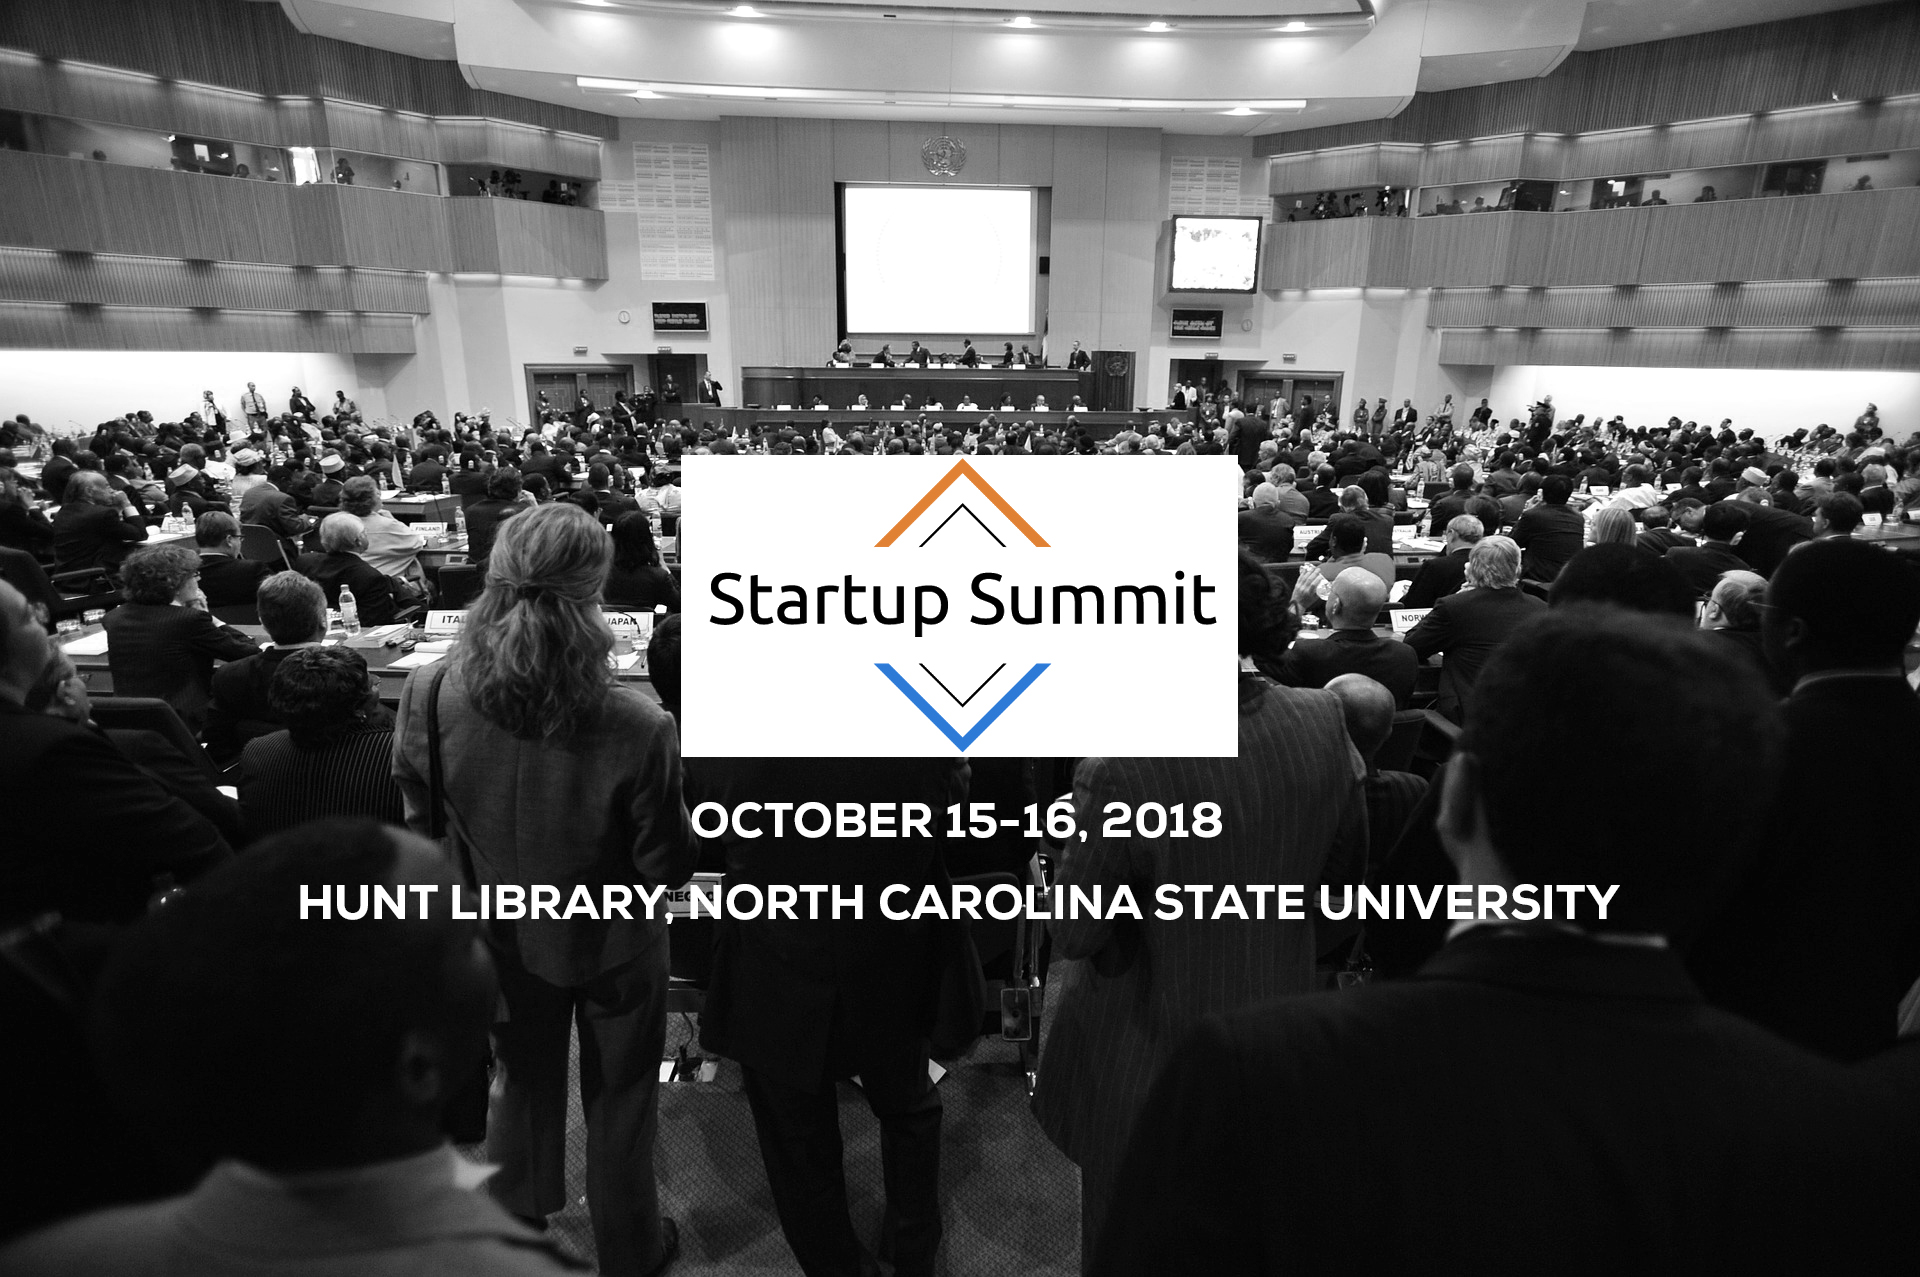 Startup Summit 2018: Boost your knowledge, grow your startup